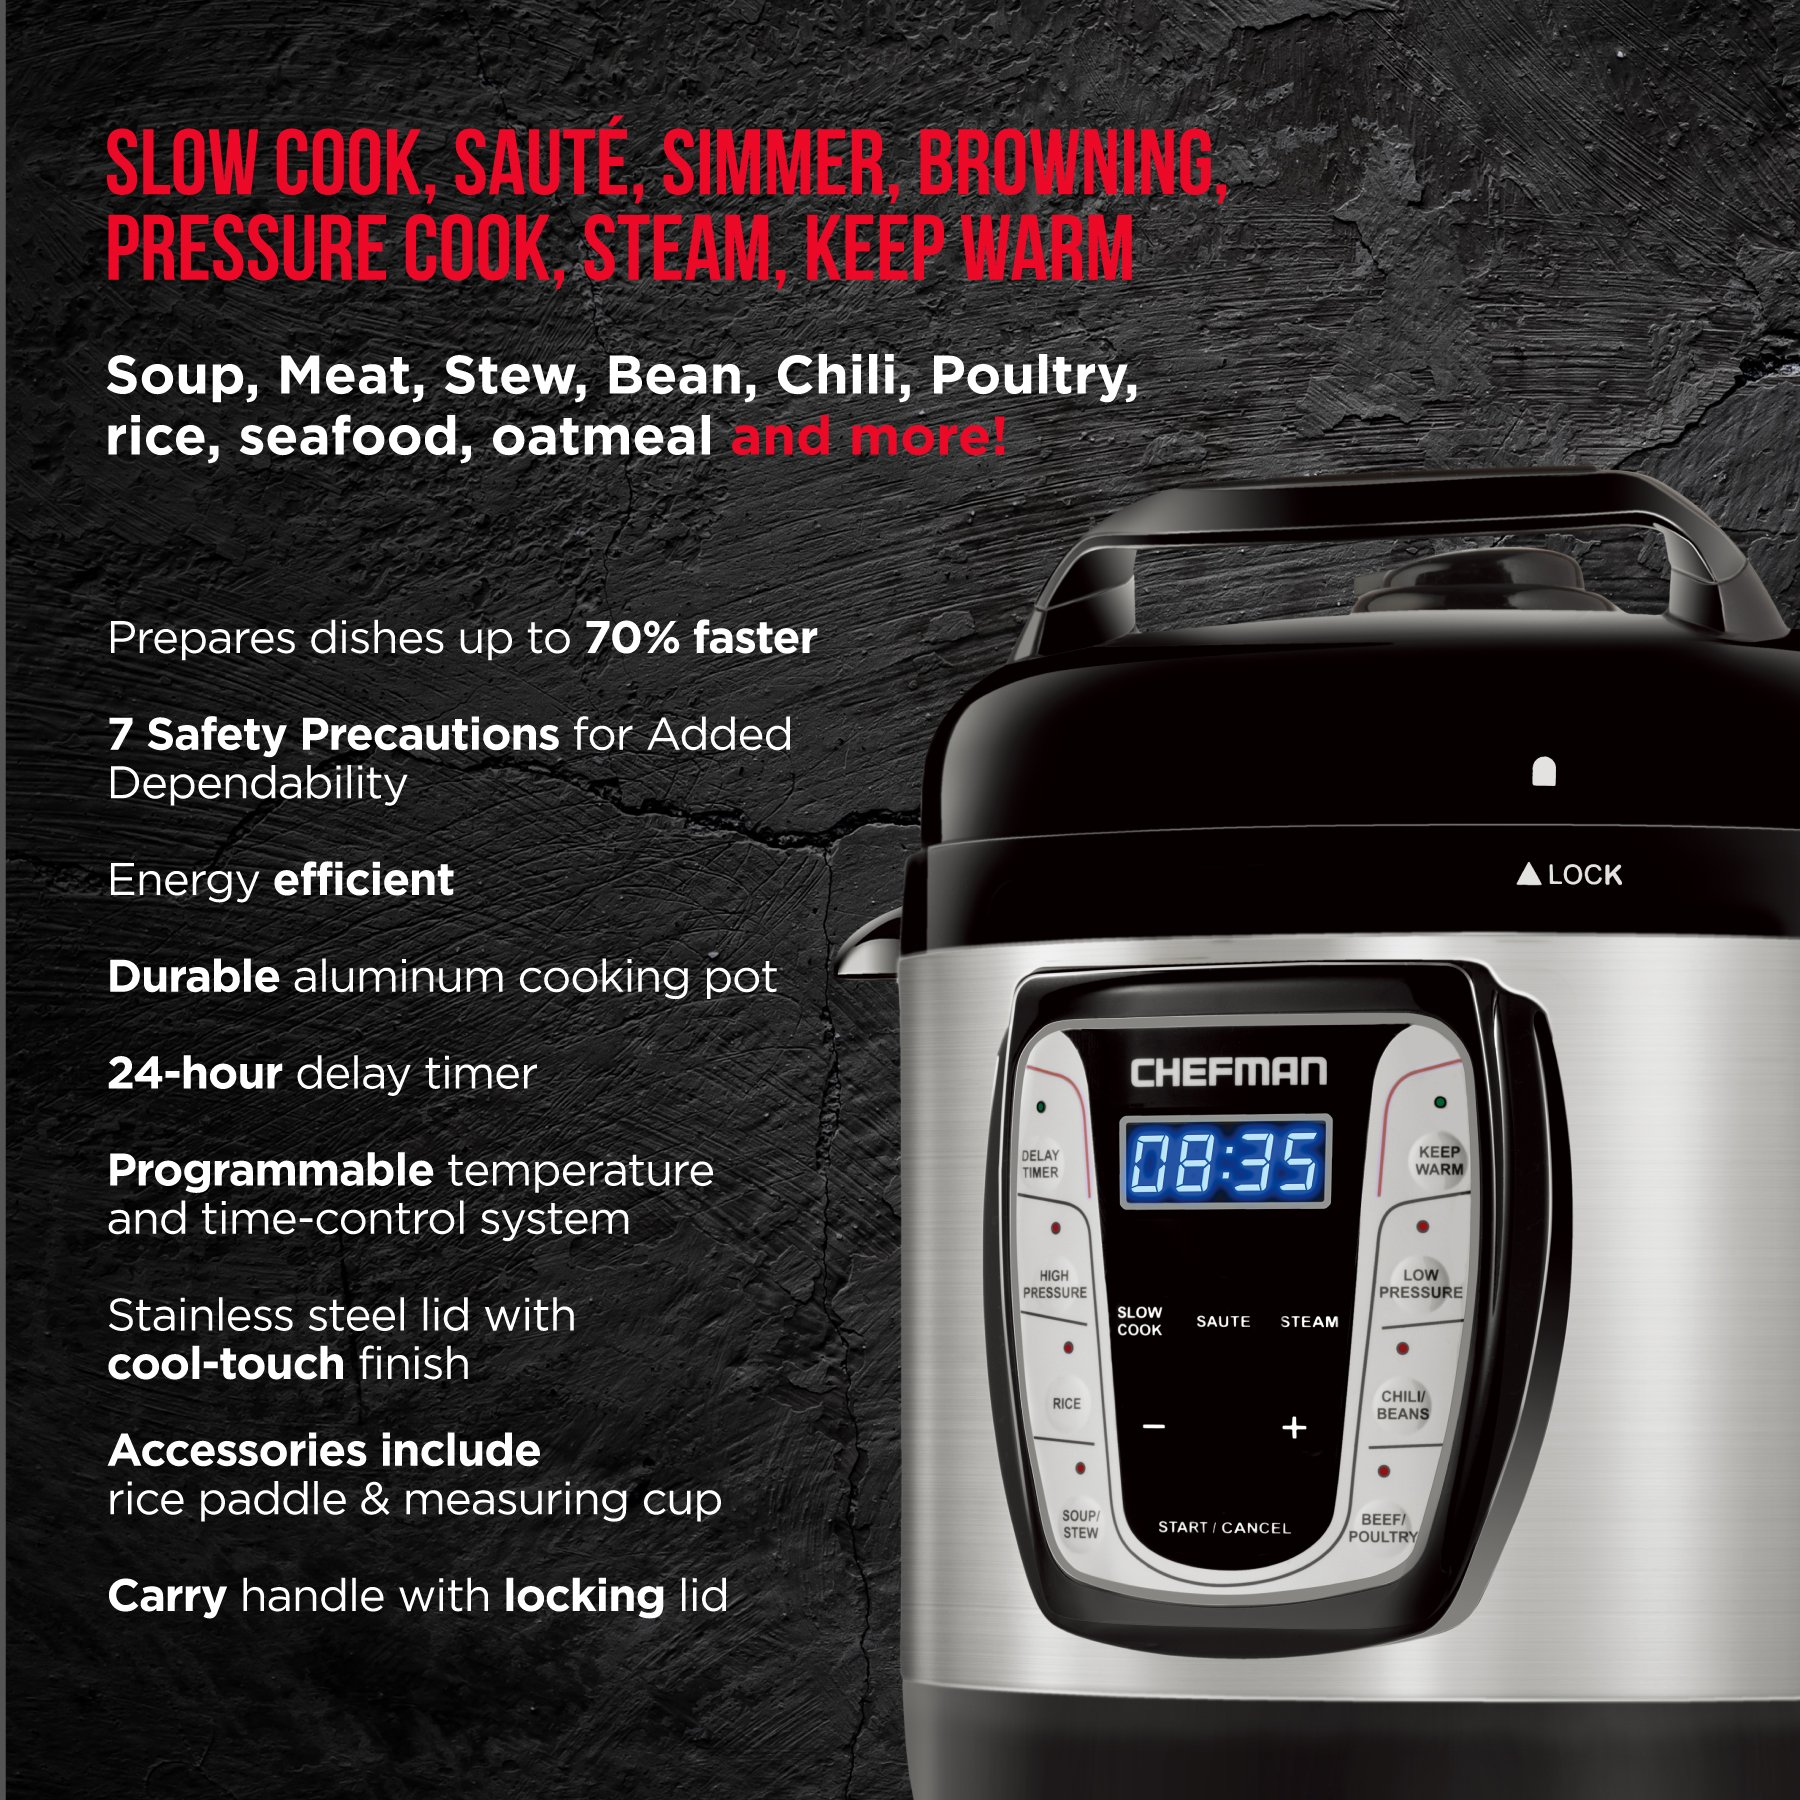 Chefman 2.5 Qt. Electric Pressure Programmable Multicooker, Prepare Dishes in an Instant, Aluminum Pot Multifunctional Slow, Rice Cooker/Steamer, Sauté, Soup Maker by Chefman (Image #3)